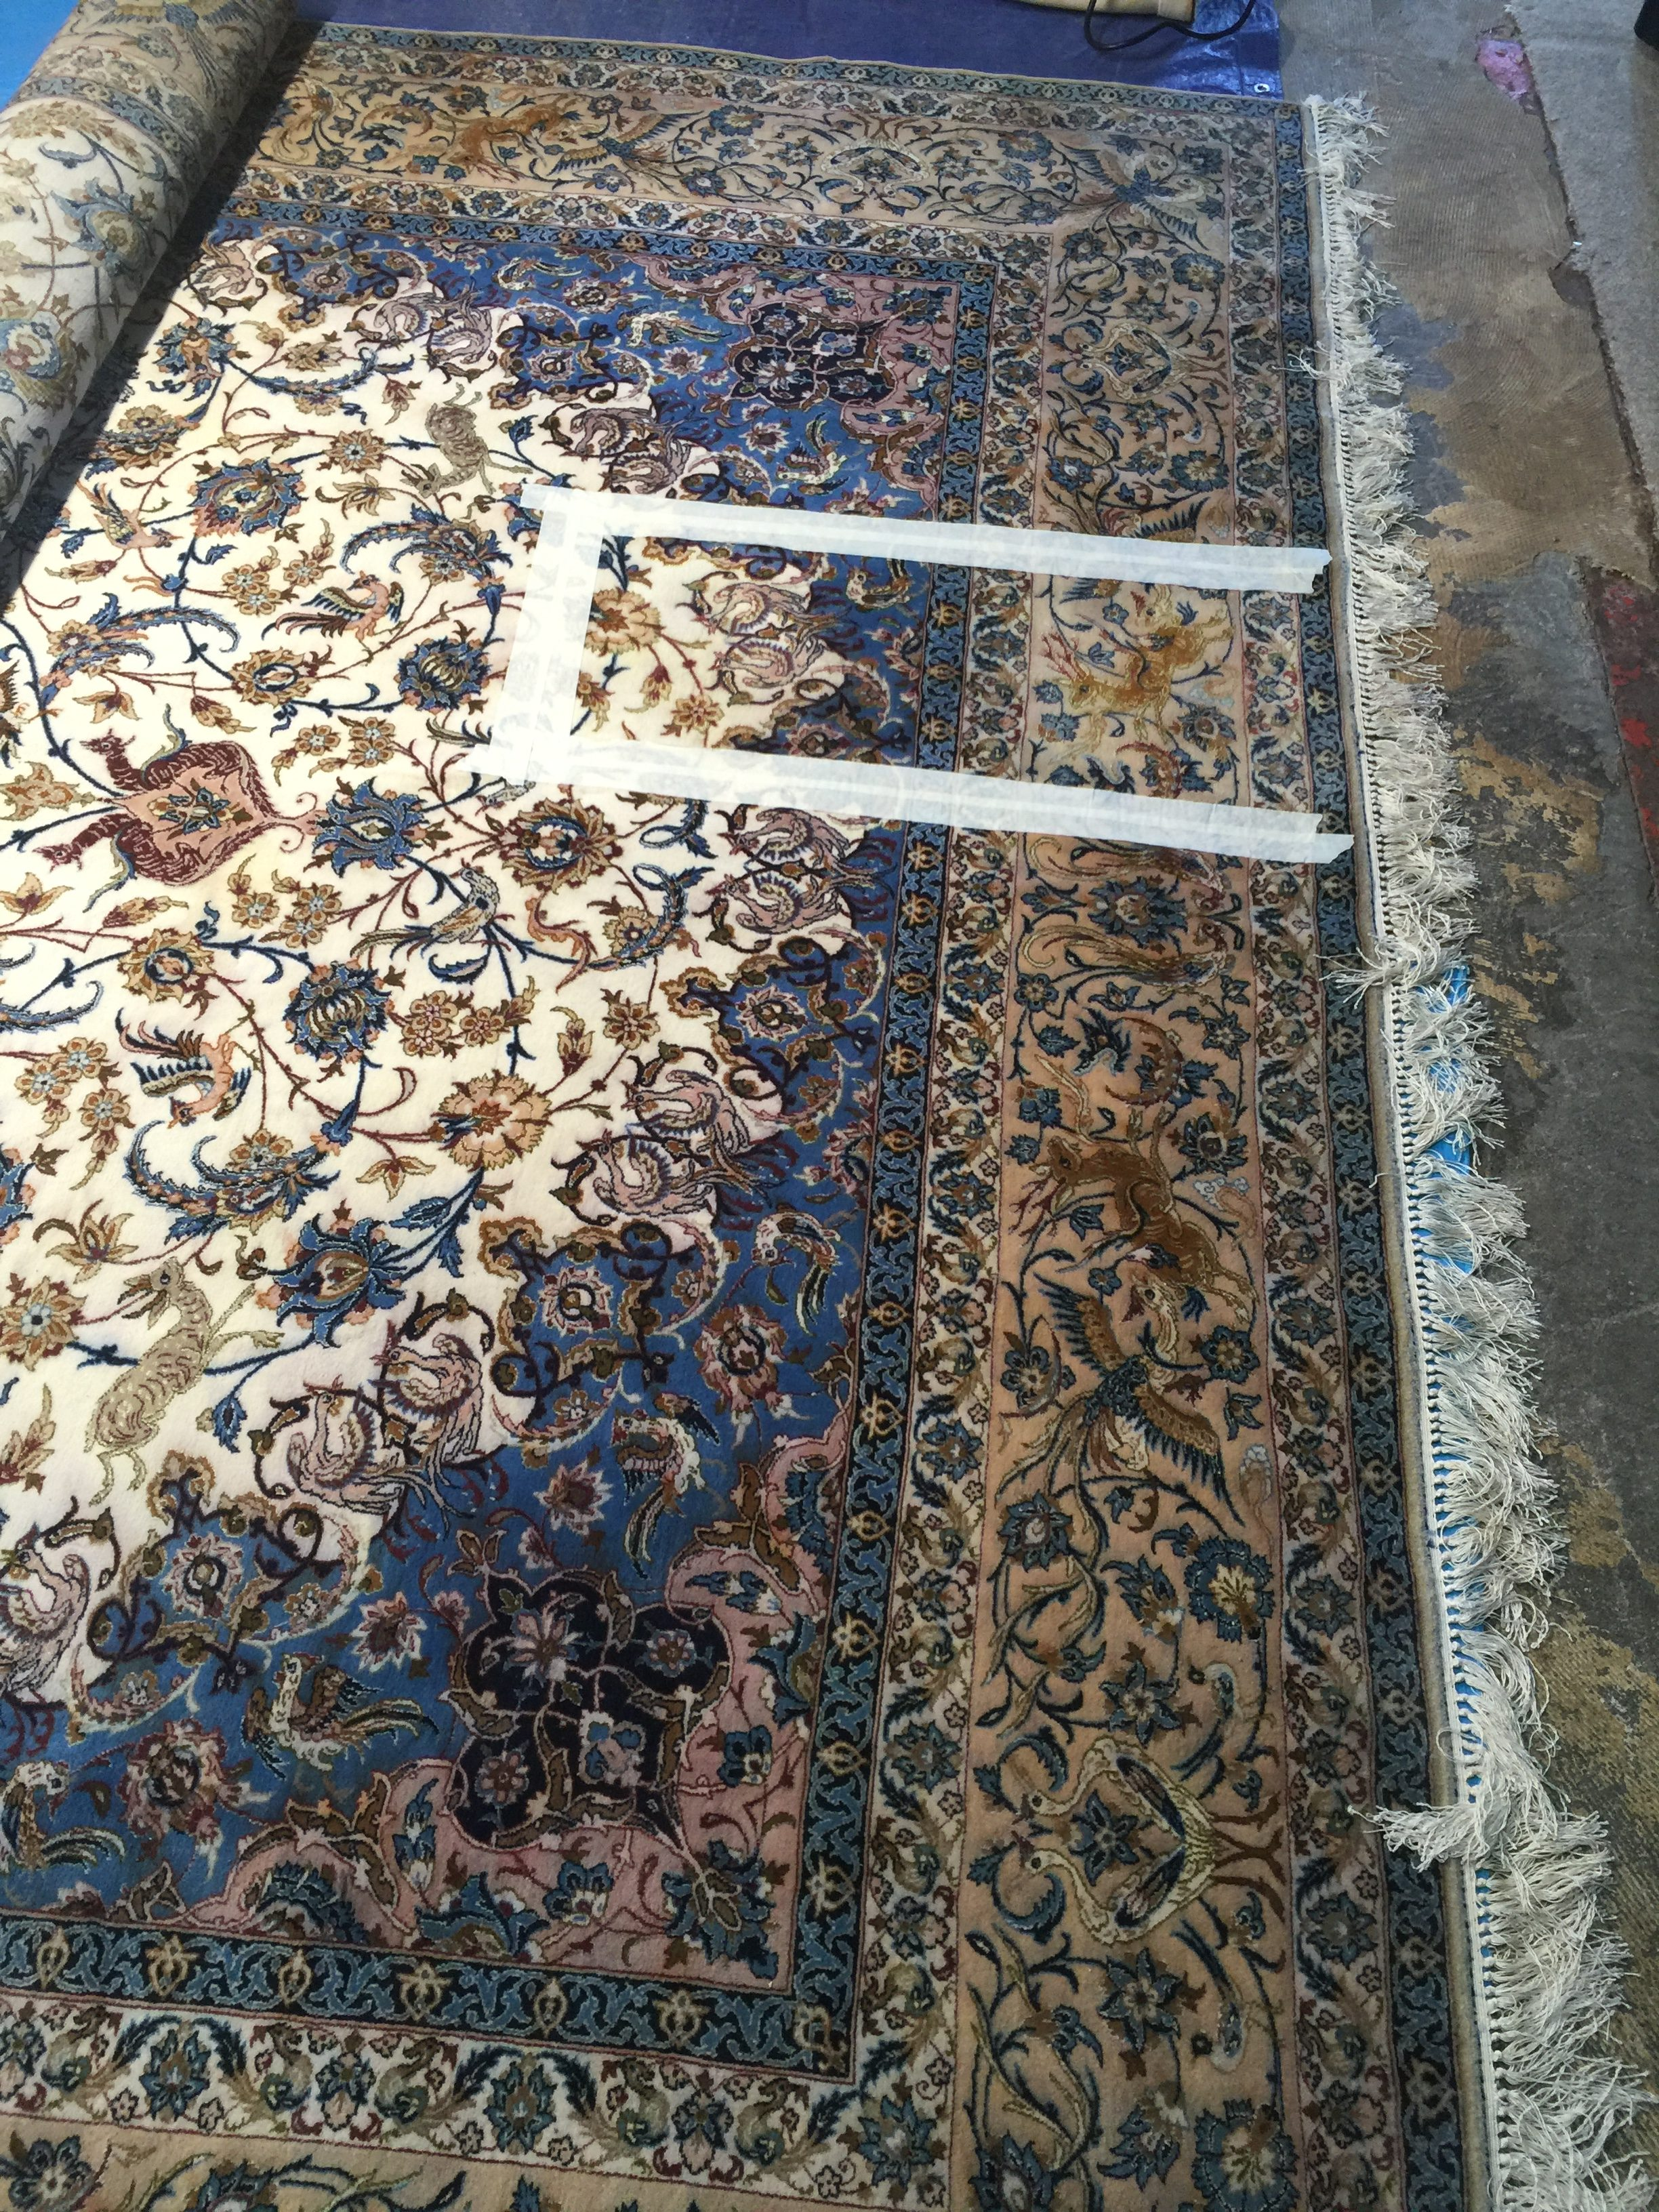 why htm oriental clean you area t shouldn carpets cleaning rug like shouldnt list orientalrugs s rugs articles angie